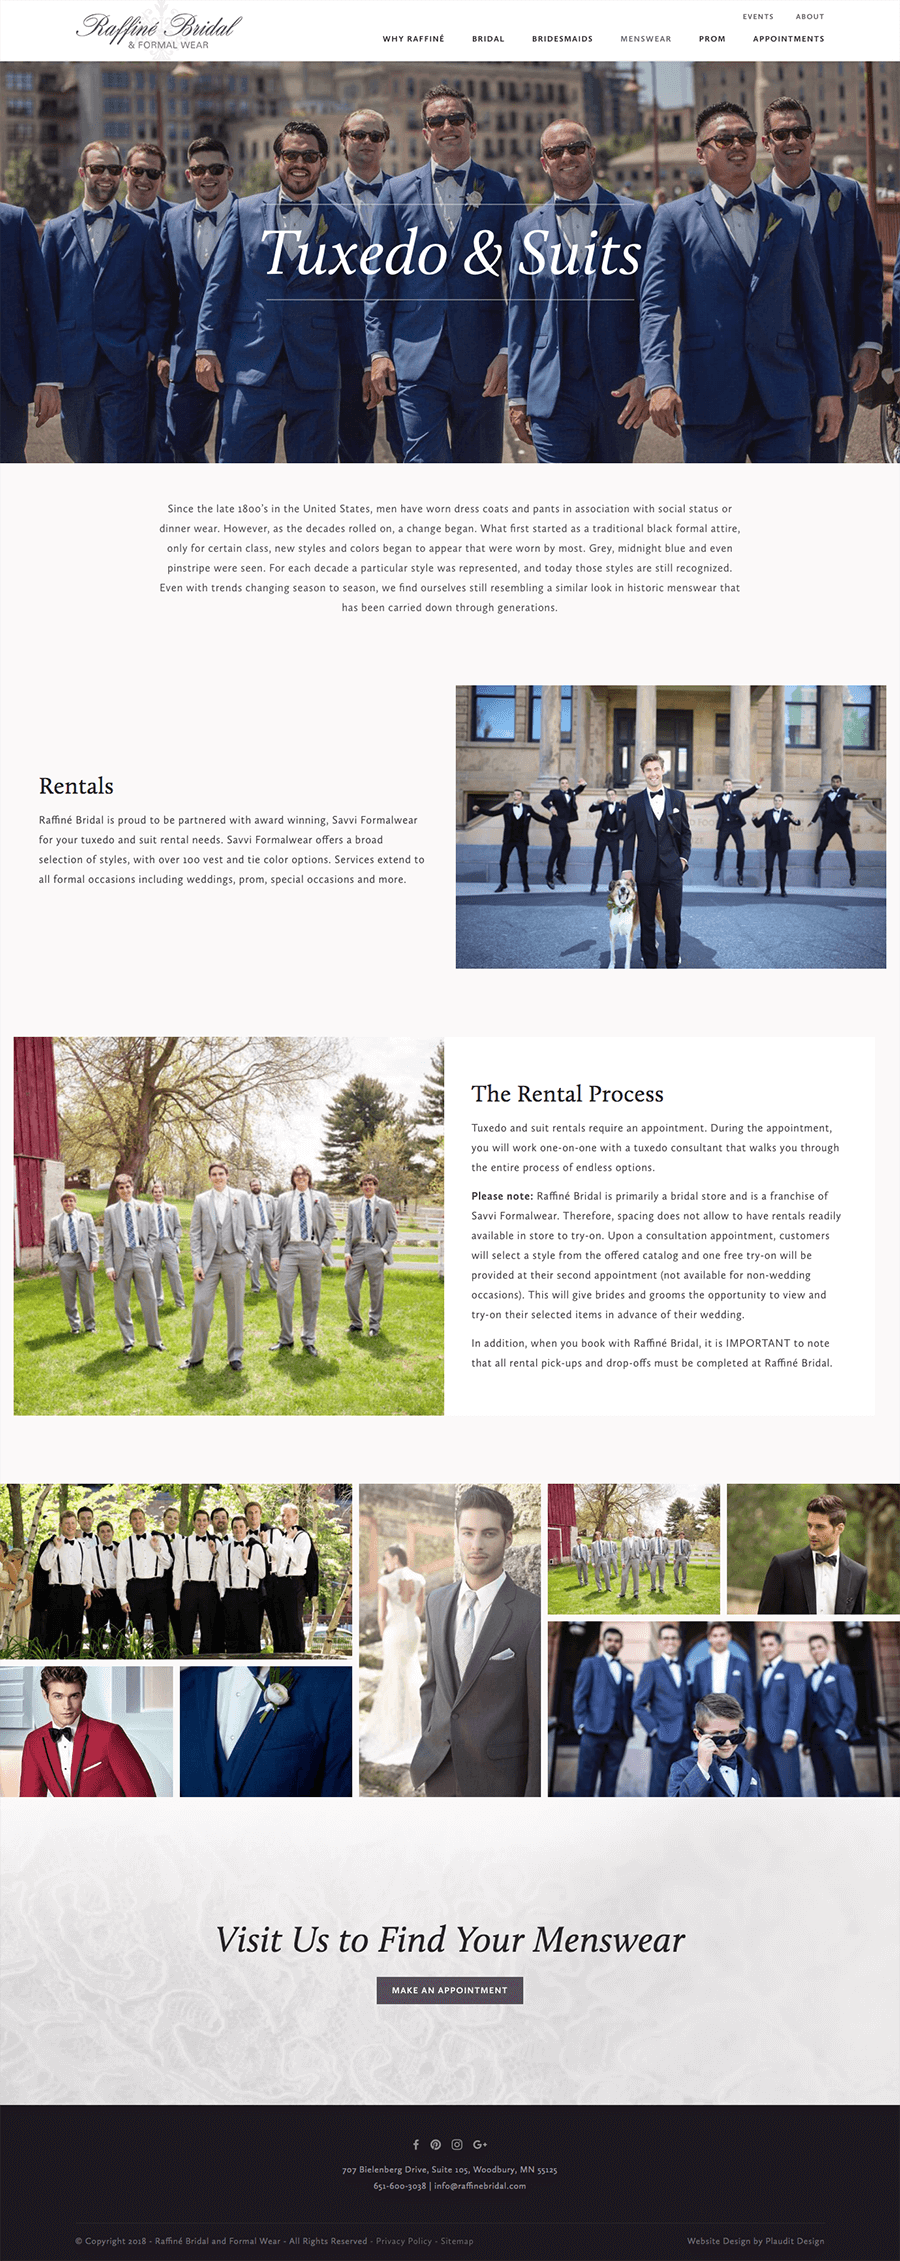 Screenshot of menswear page on Raffine Bridal website.